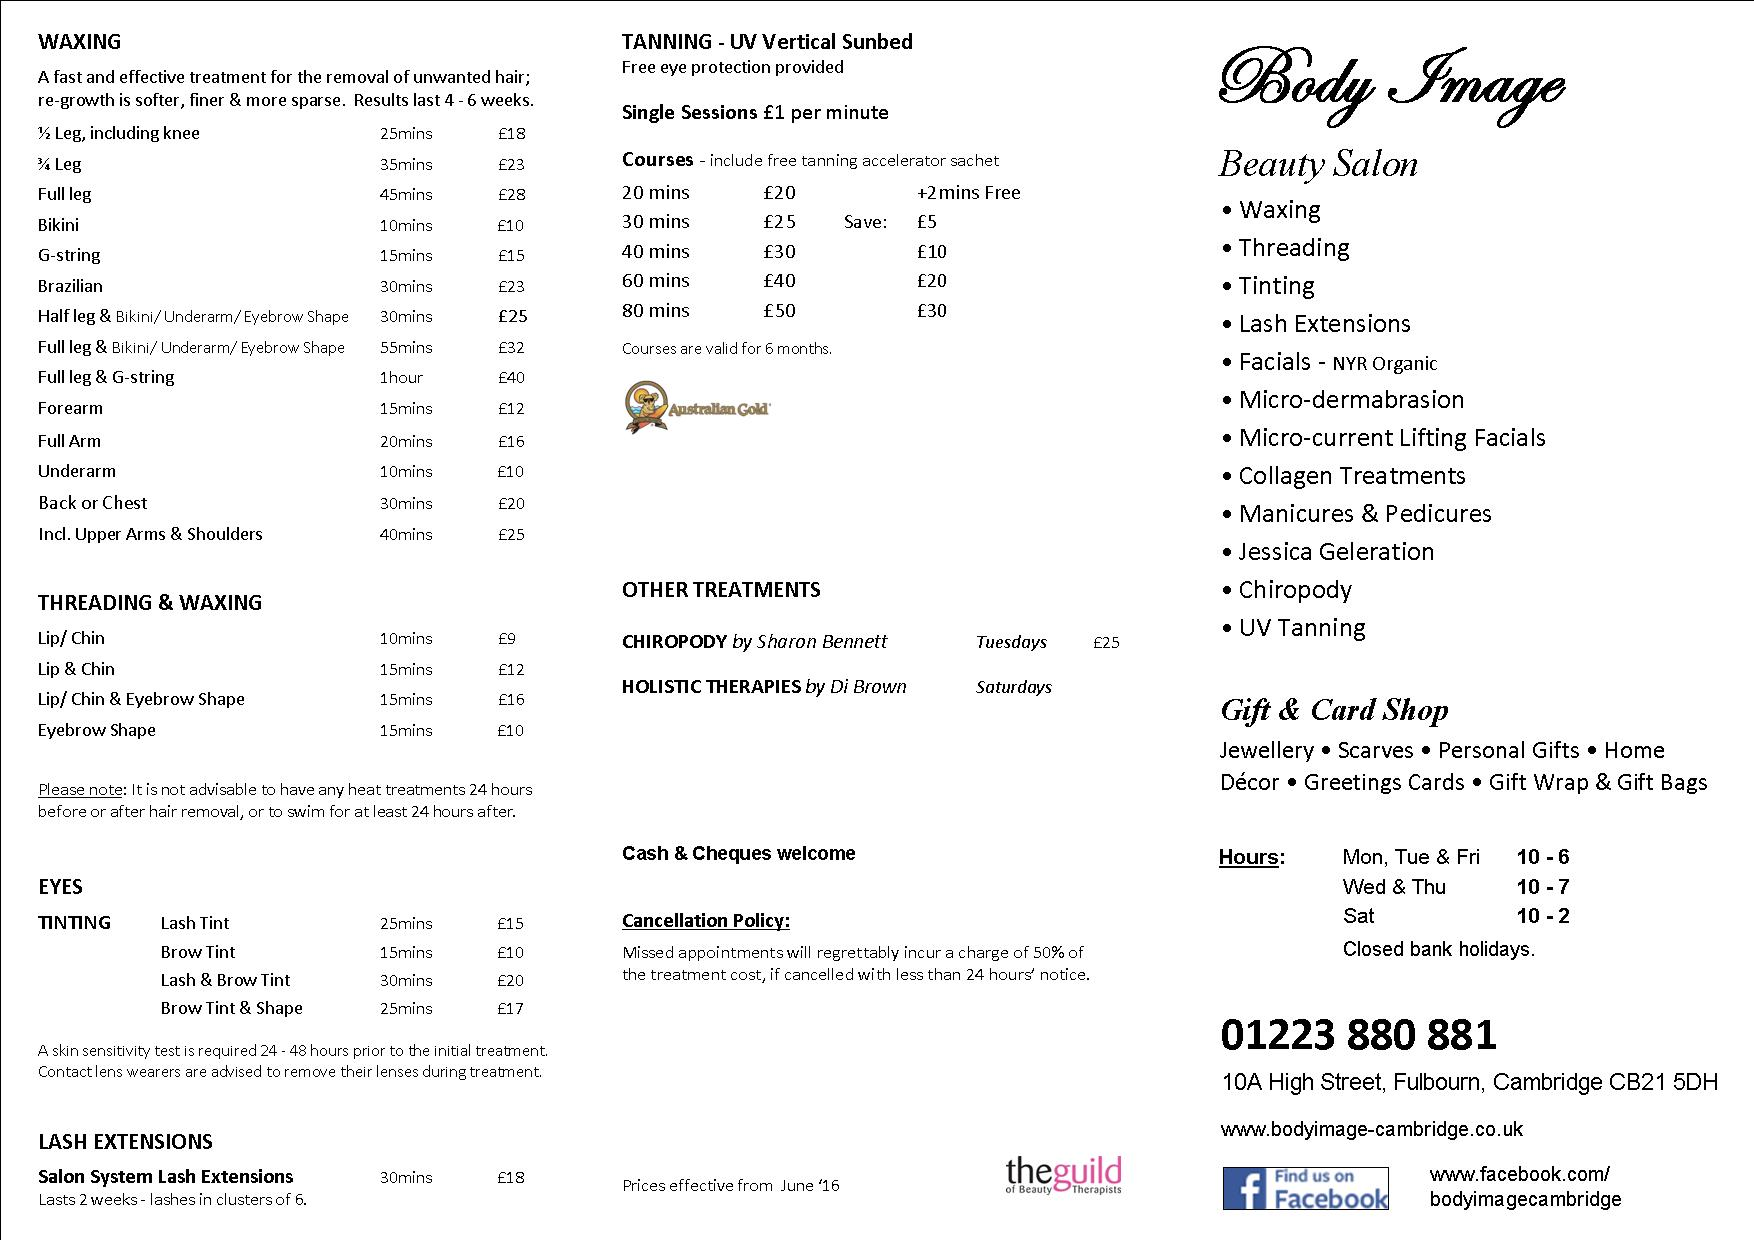 Price-List-Beauty-Image-Cambridge-Price-2